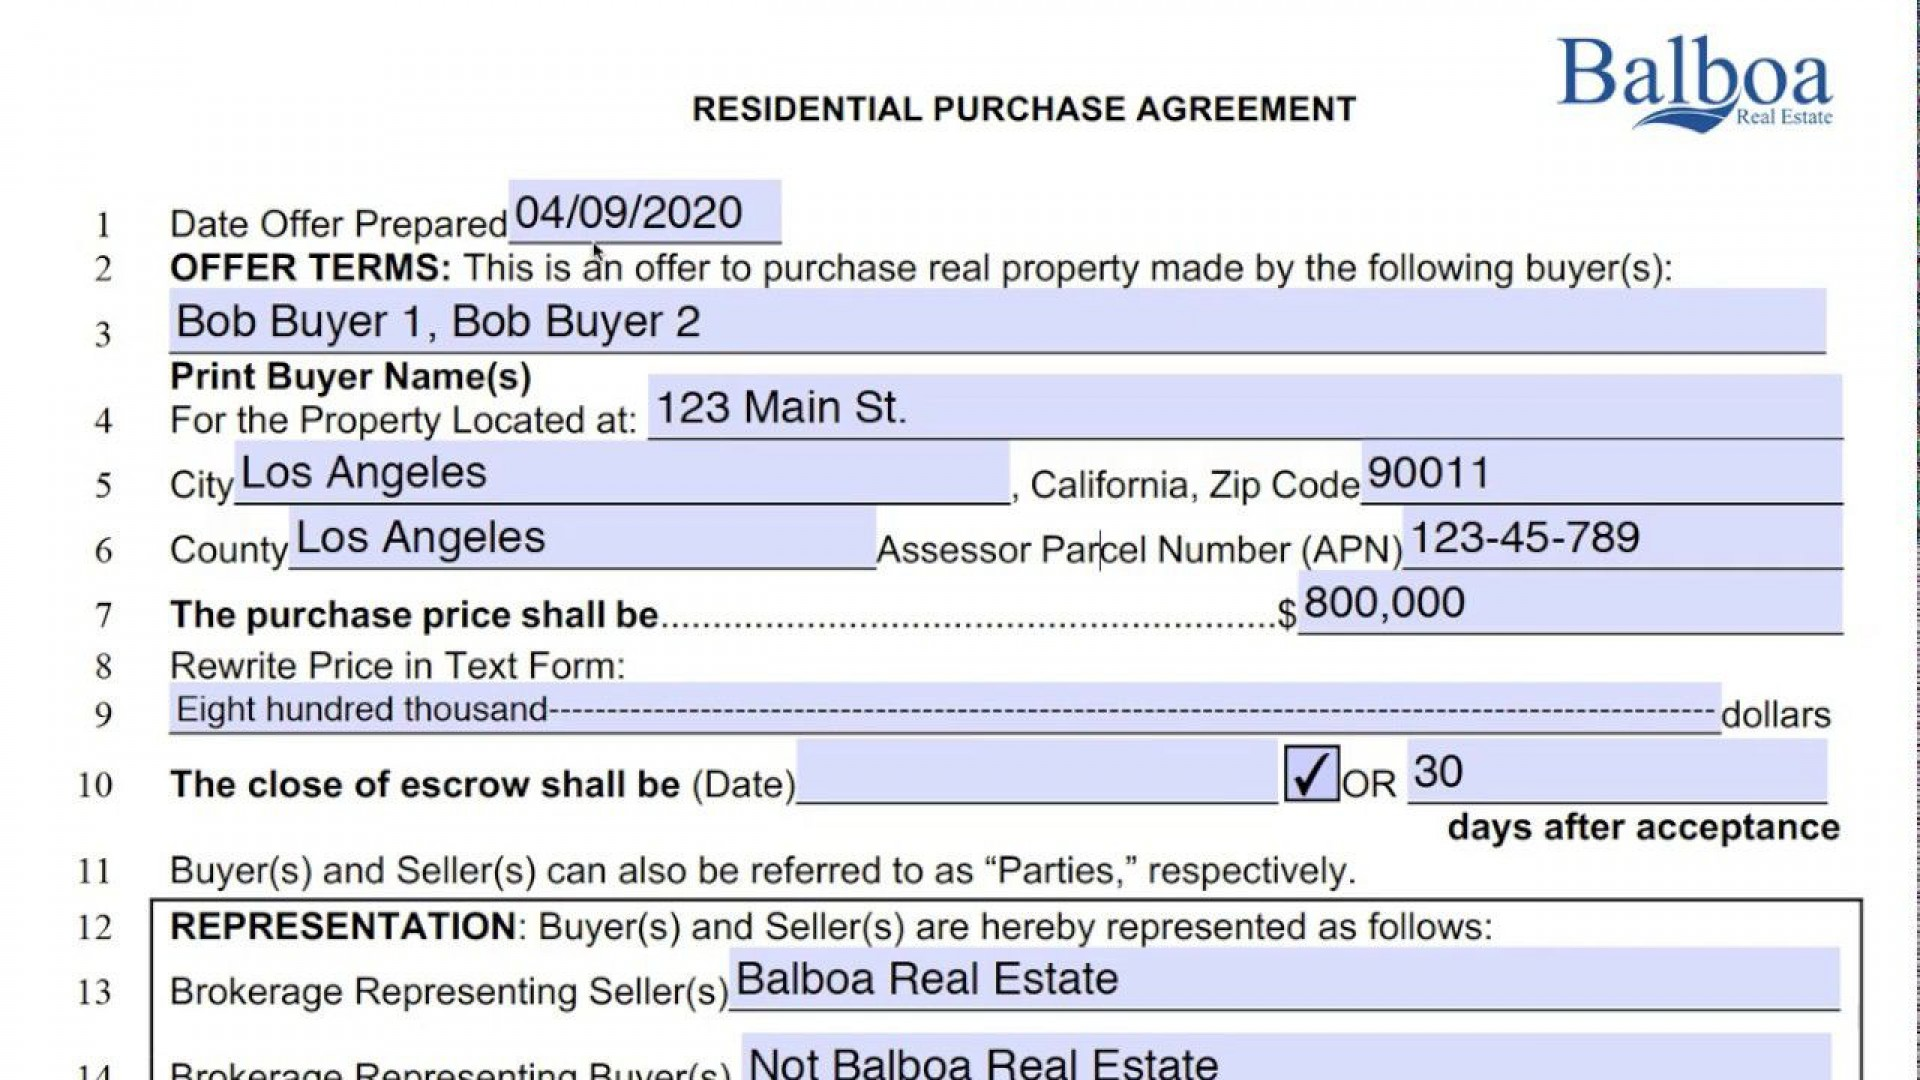 002 Shocking Real Estate Purchase Contract California Photo  Commercial Agreement Pdf1920